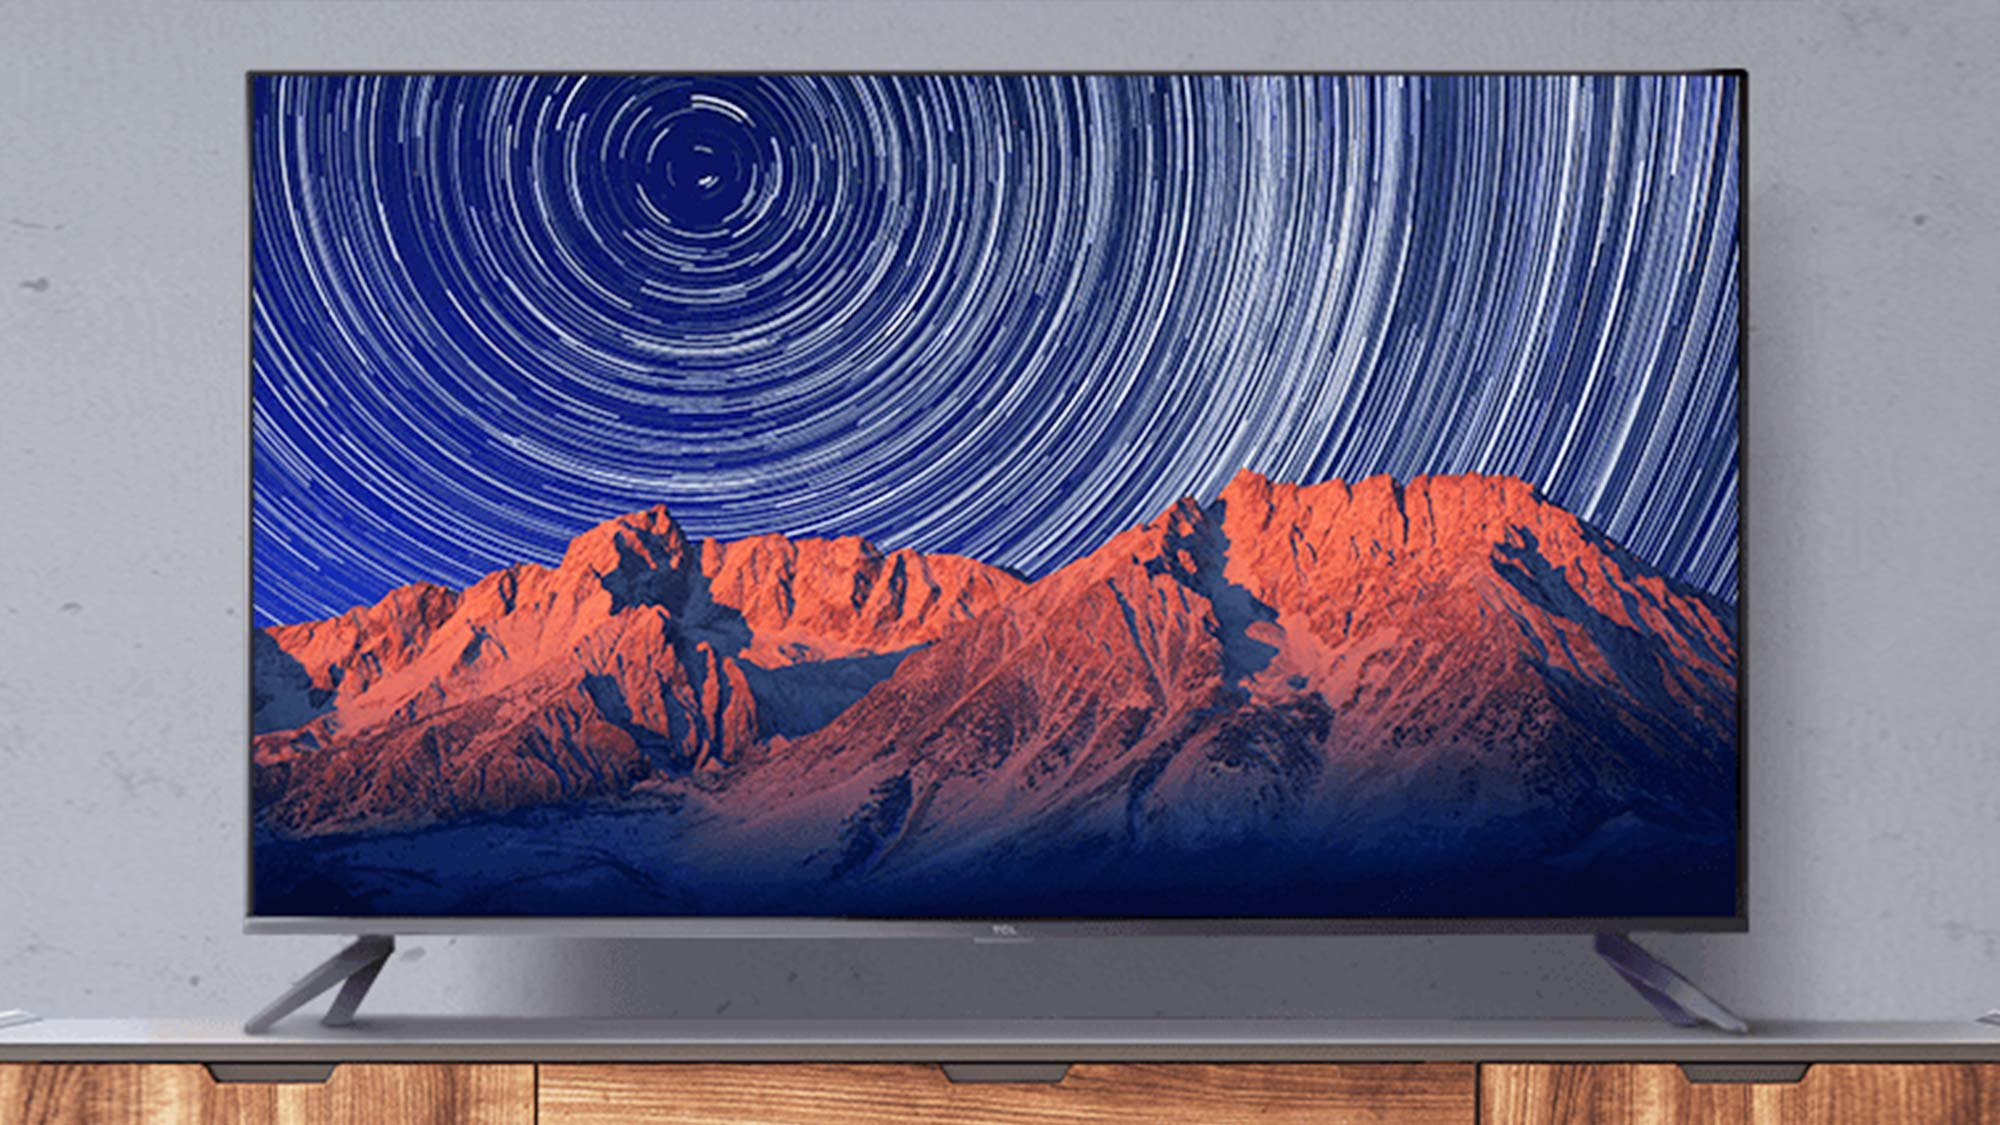 TCL 5-Series Roku TV (S535) review: A killer QLED TV value